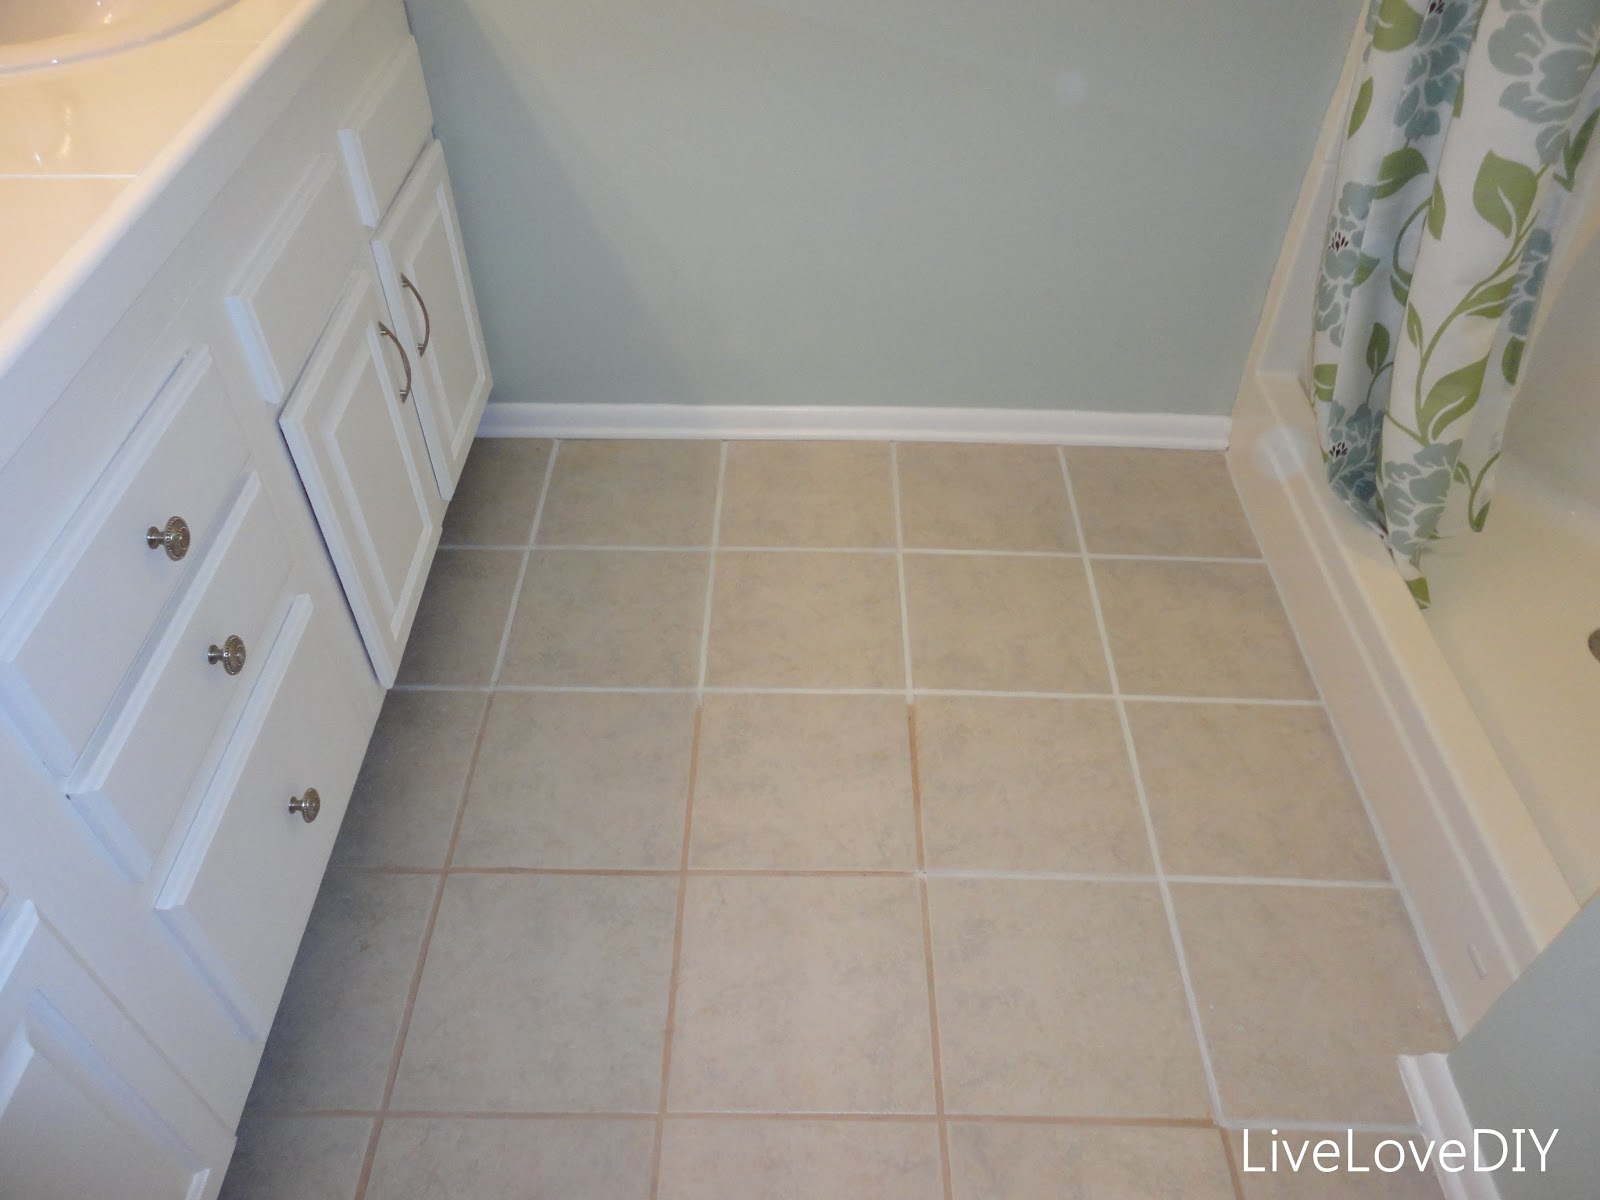 LiveLoveDIY: How To Restore Dirty Tile Grout